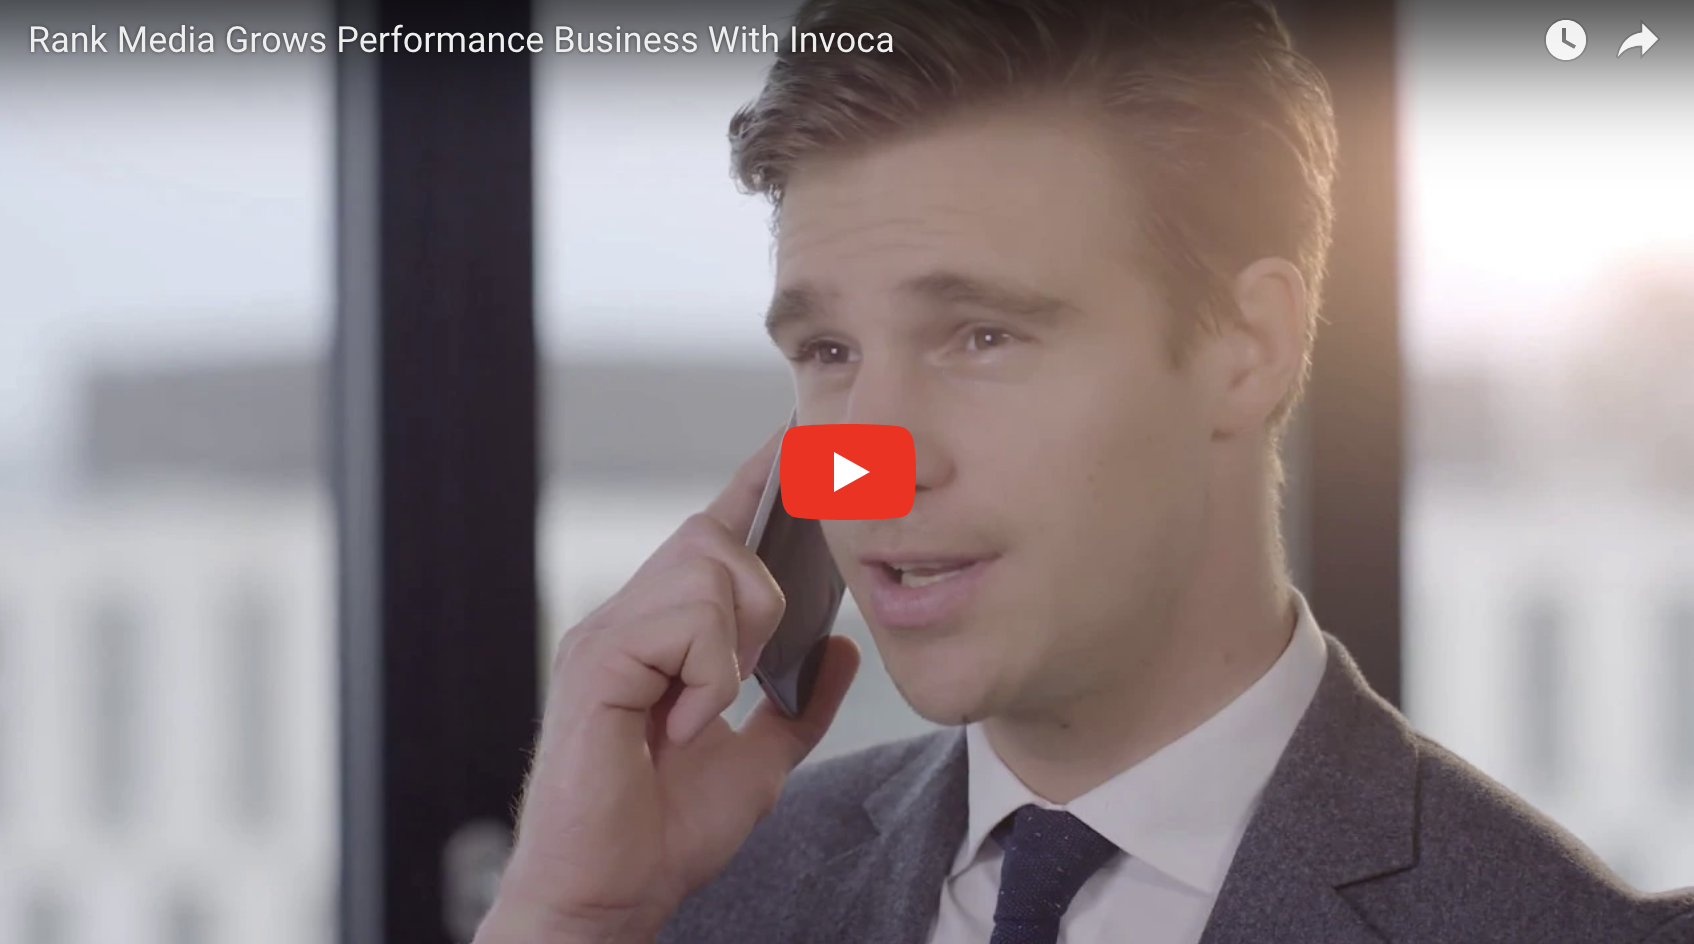 Rank Media Grows Performance Business With Invoca [Video]